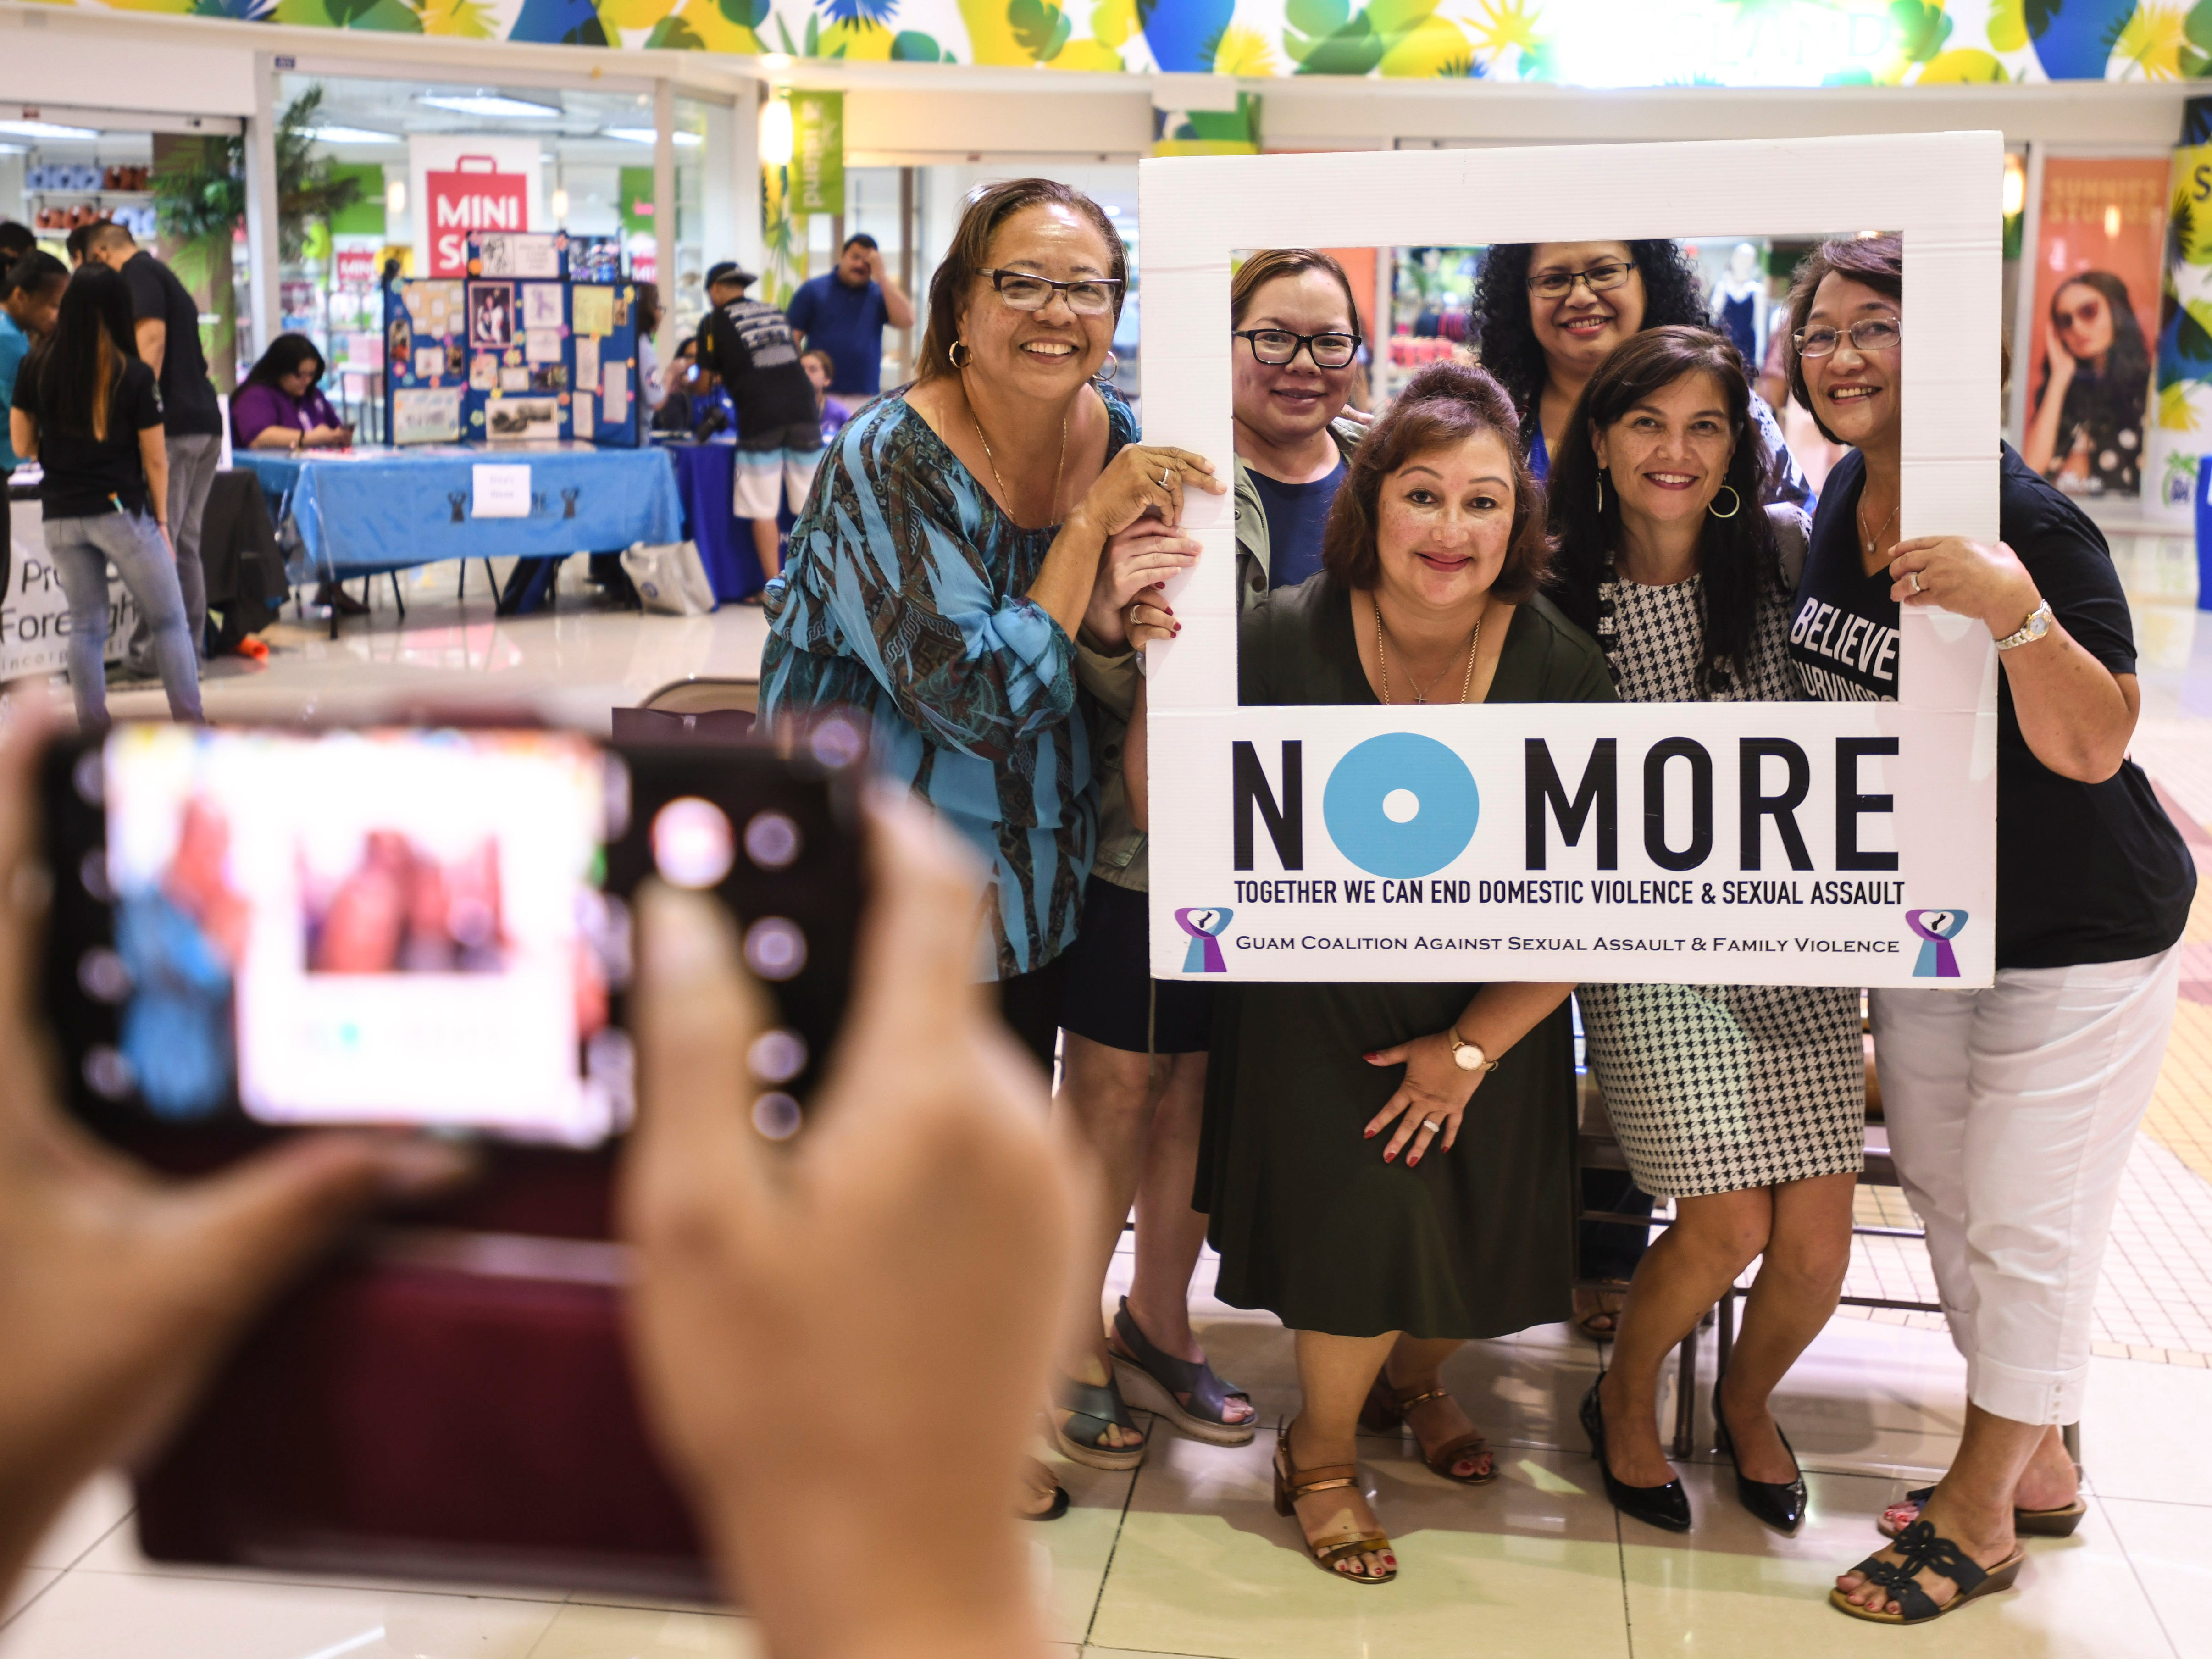 Guam Behavioral Health and Wellness Center Director Therese Arriola, Sen. Therese Terlaje and other gather for a photo during the National Slavery and Human Trafficking Prevention Month and National Stalking Awareness Month Outreach Fair at the Agana Shopping Center on Saturday, Jan. 19, 2019.